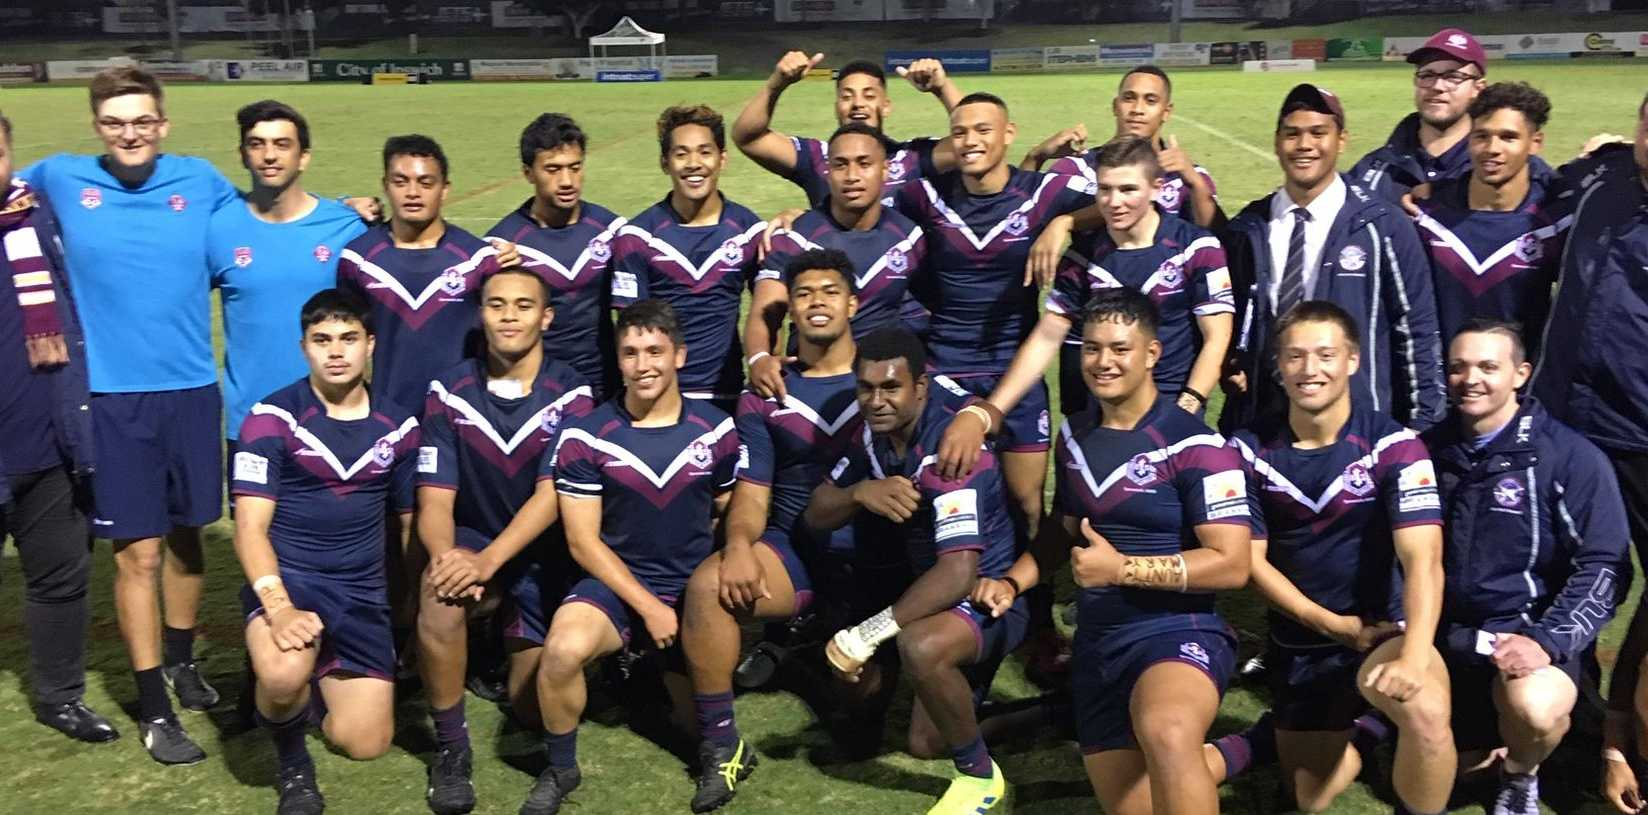 The gutsy, unheralded Ipswich SHS squad under coach Joshua Brethreton which finished second in the Langer Cup.